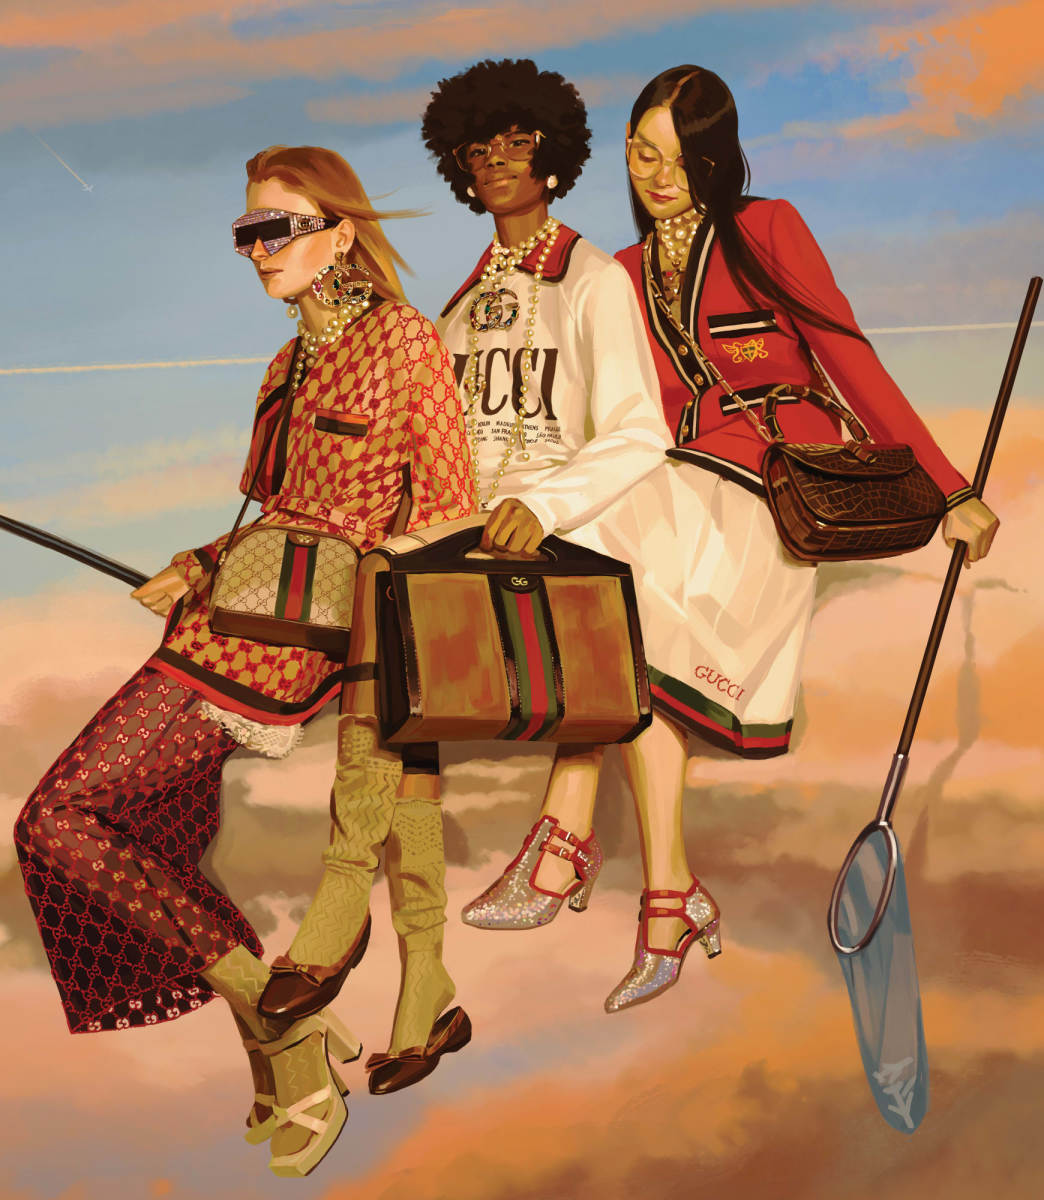 5330109e17fc Gucci Kicked Off 2018 With a Casual 49 Percent Sales Growth ...